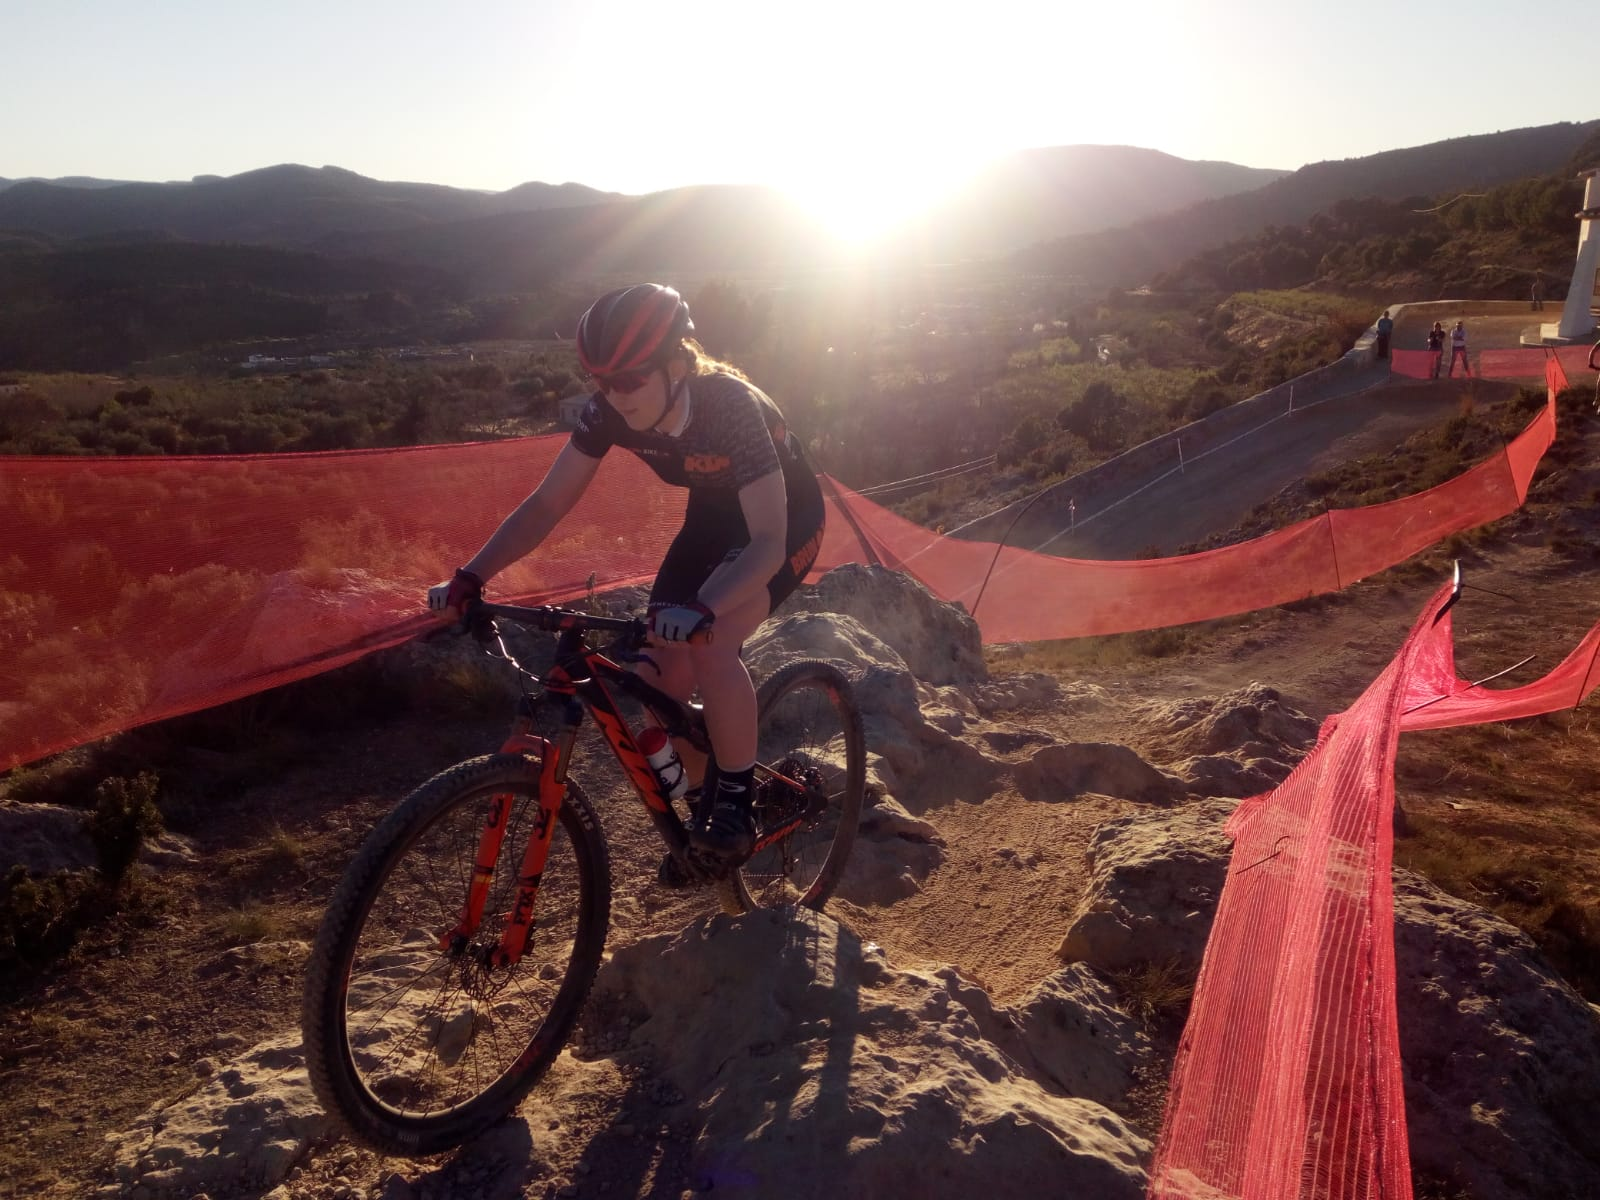 KTM Bikevision bikers op stage in Spanje(dagboek)